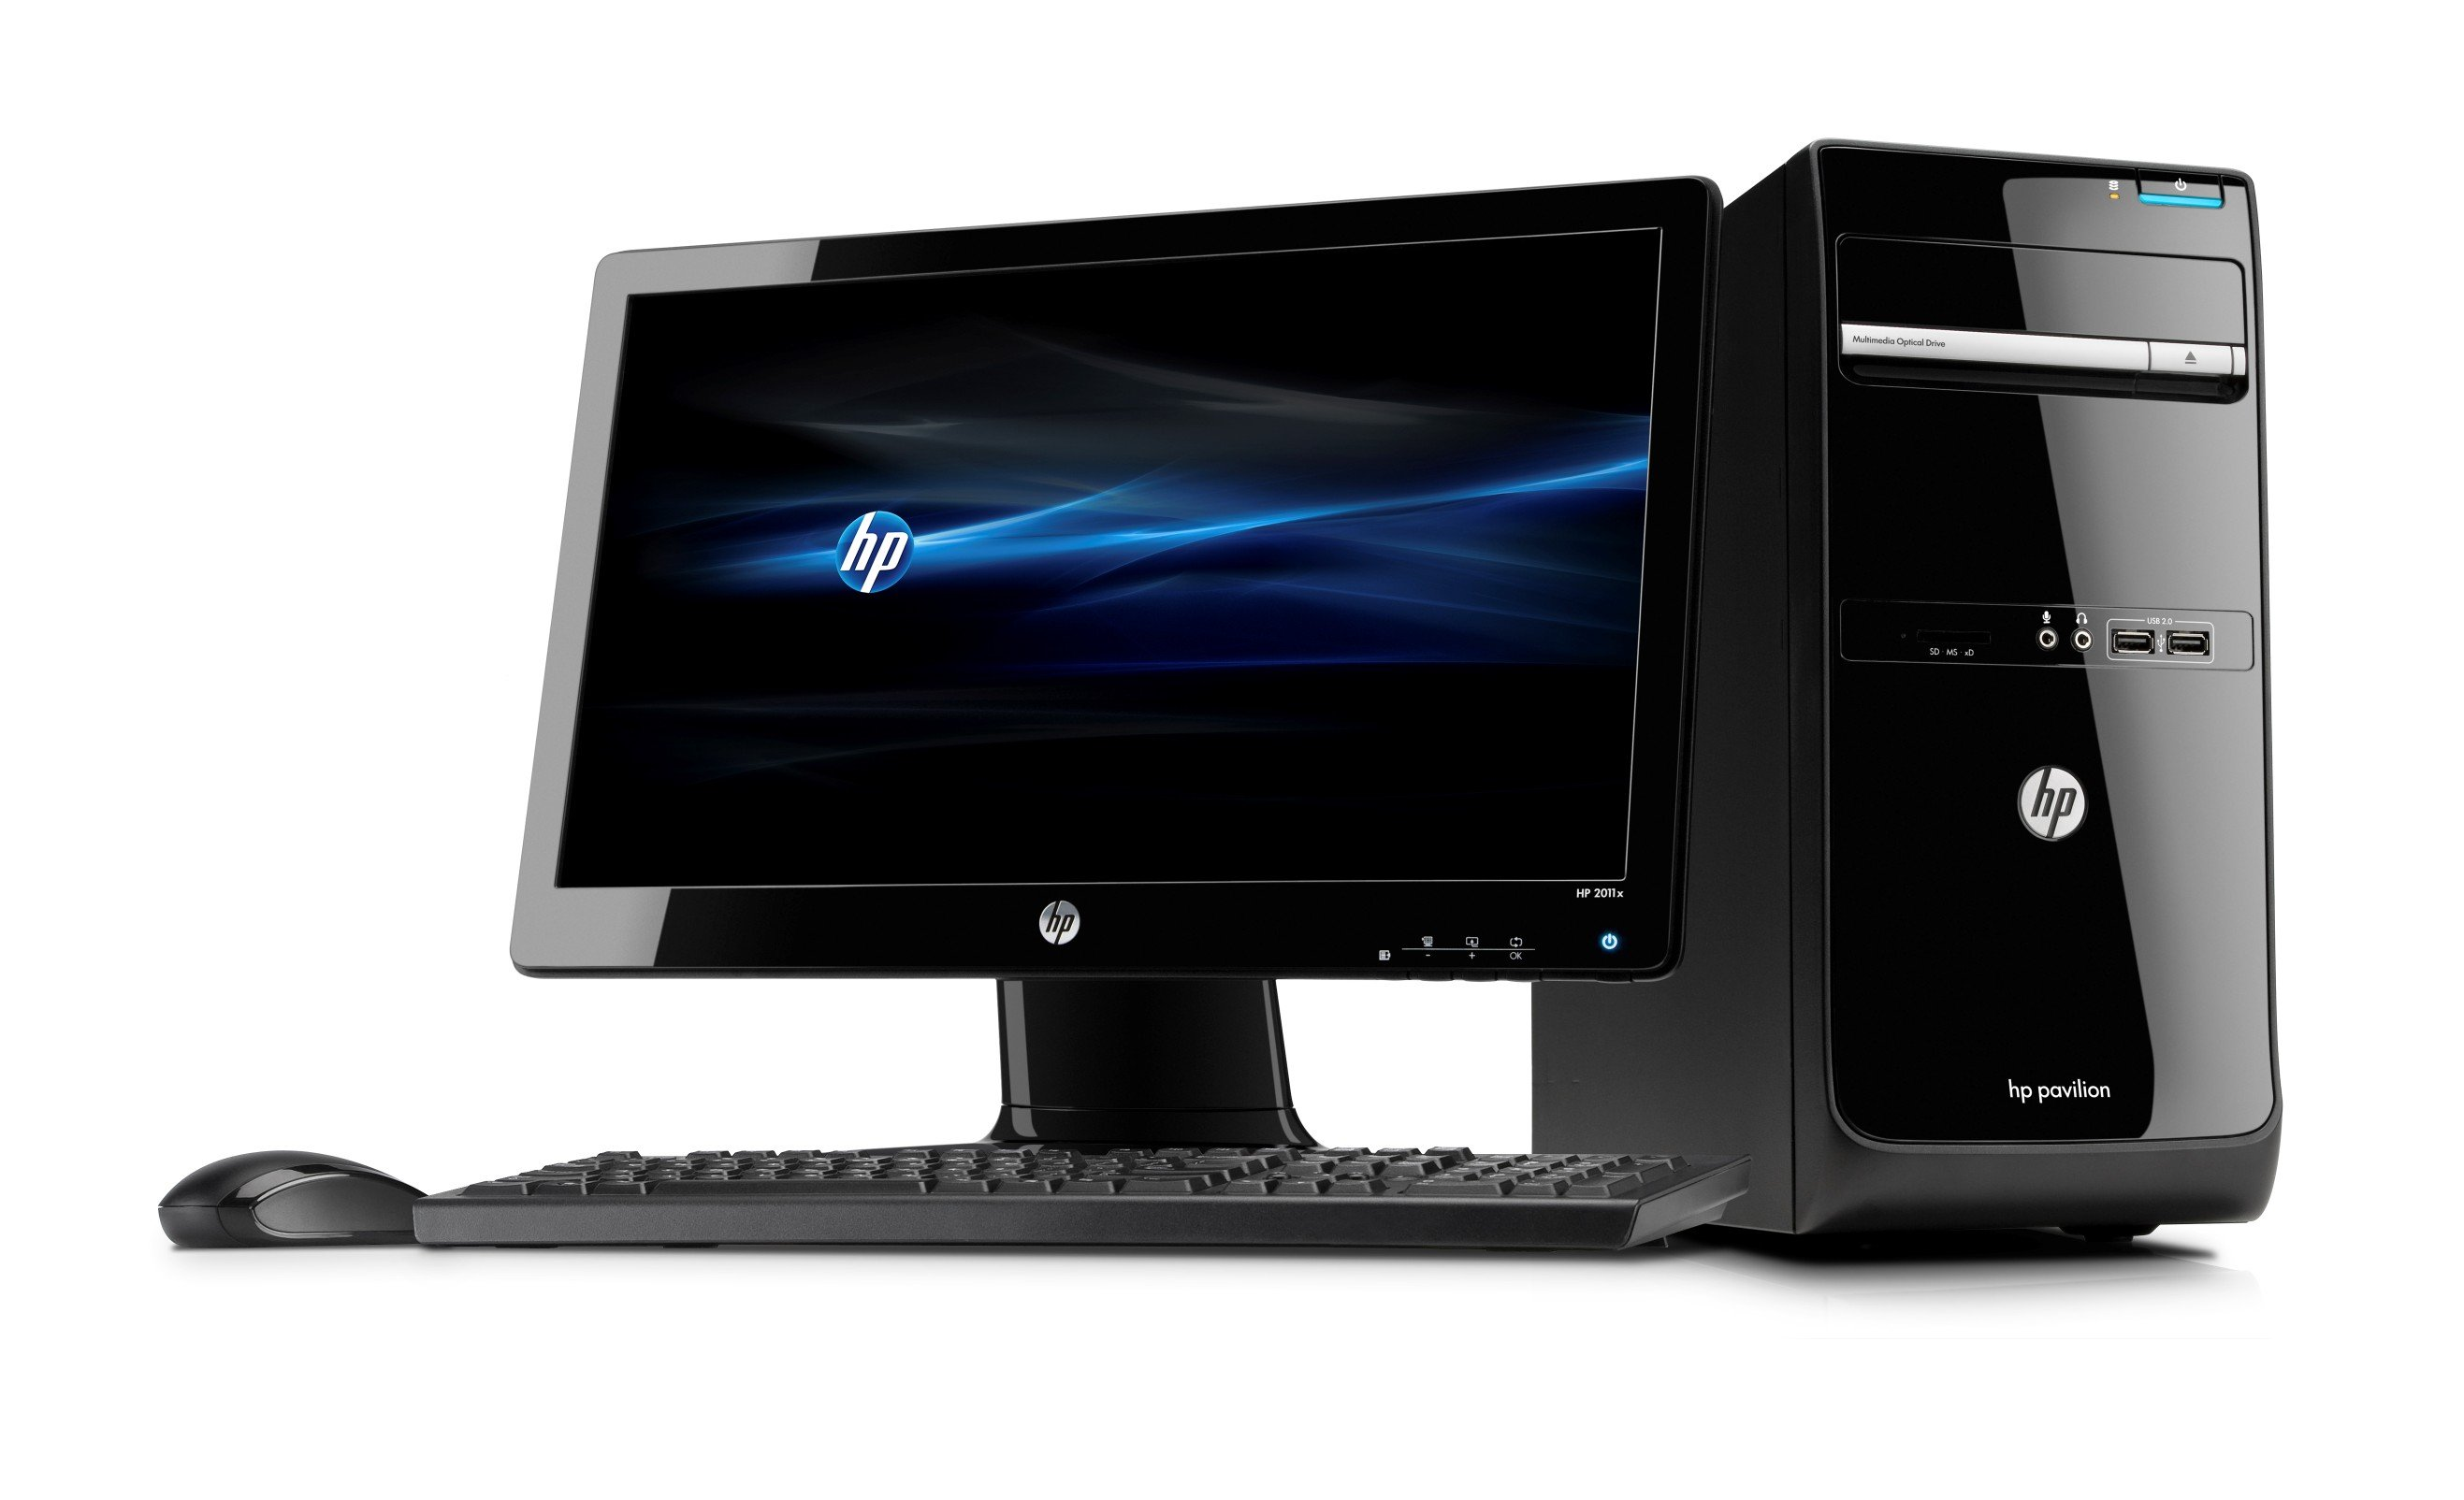 hp p6 2005ukm g620 desktop pc with 20 inch led lcd amazon. Black Bedroom Furniture Sets. Home Design Ideas